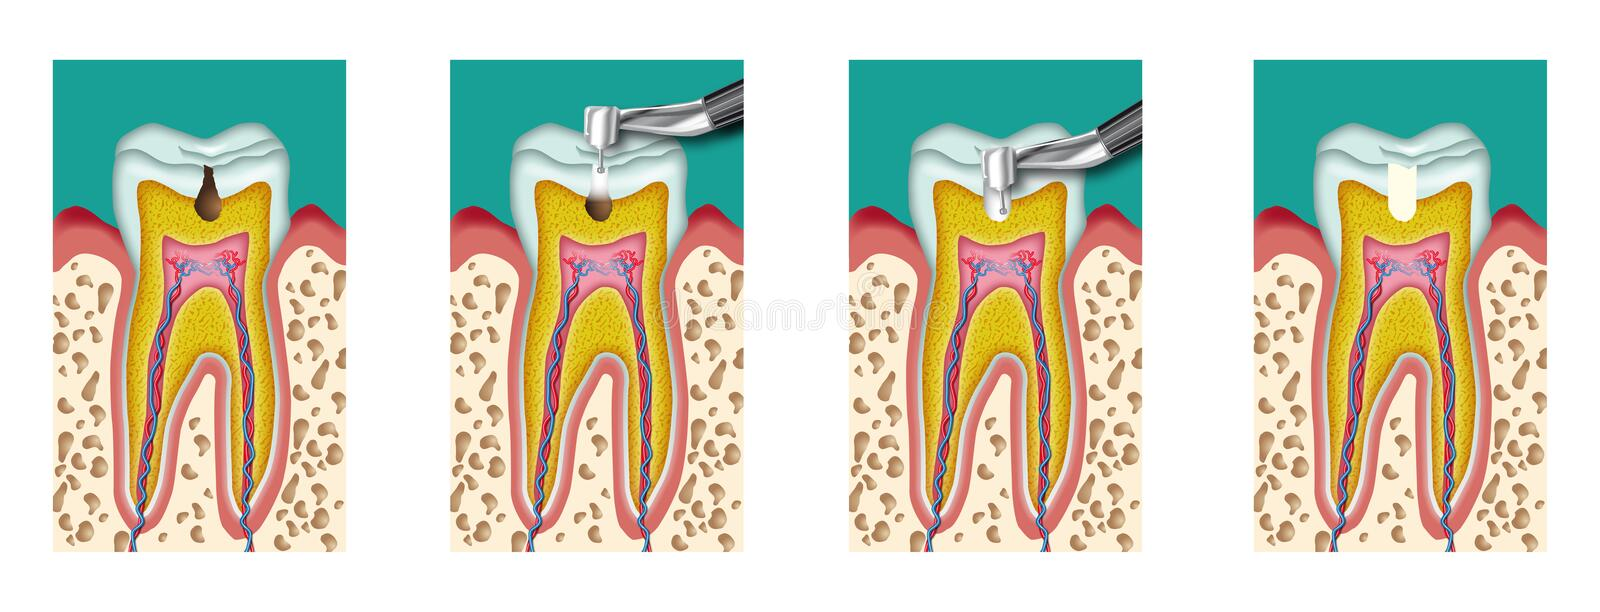 Caries stock illustration